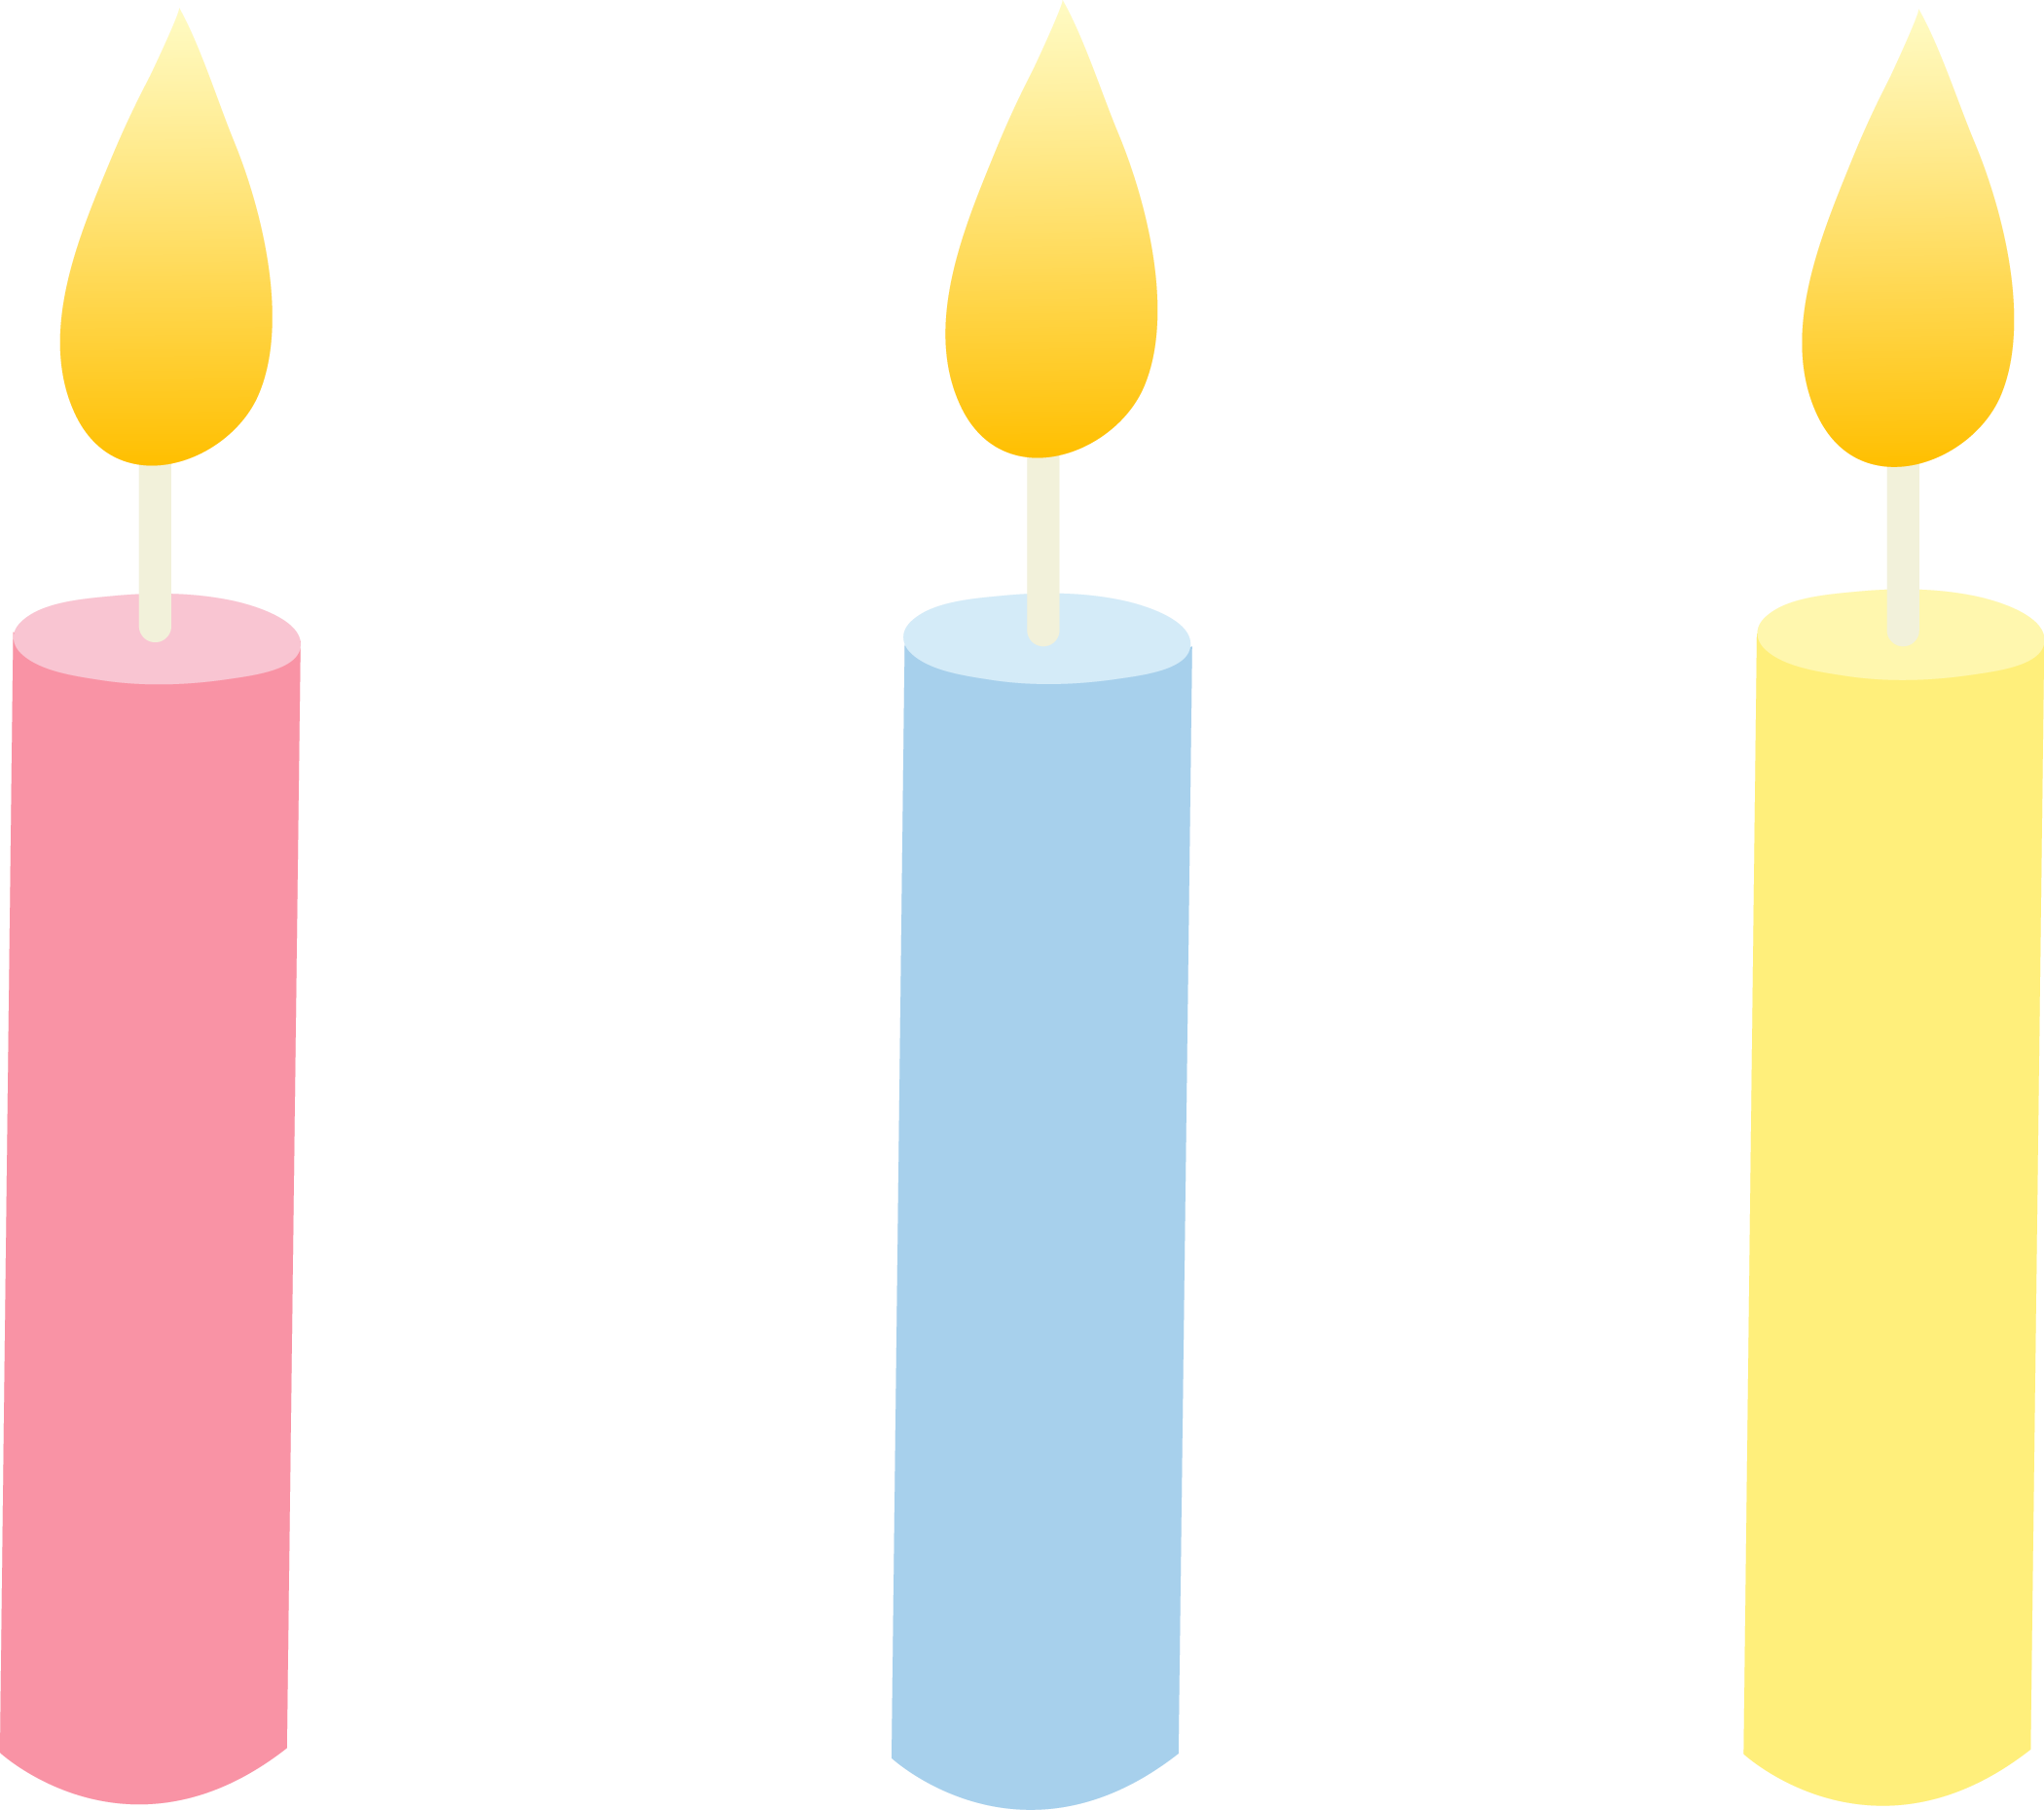 Free clipart of number 38 birthday candles svg library Free Birthday Candle Clipart, Download Free Clip Art, Free Clip Art ... svg library